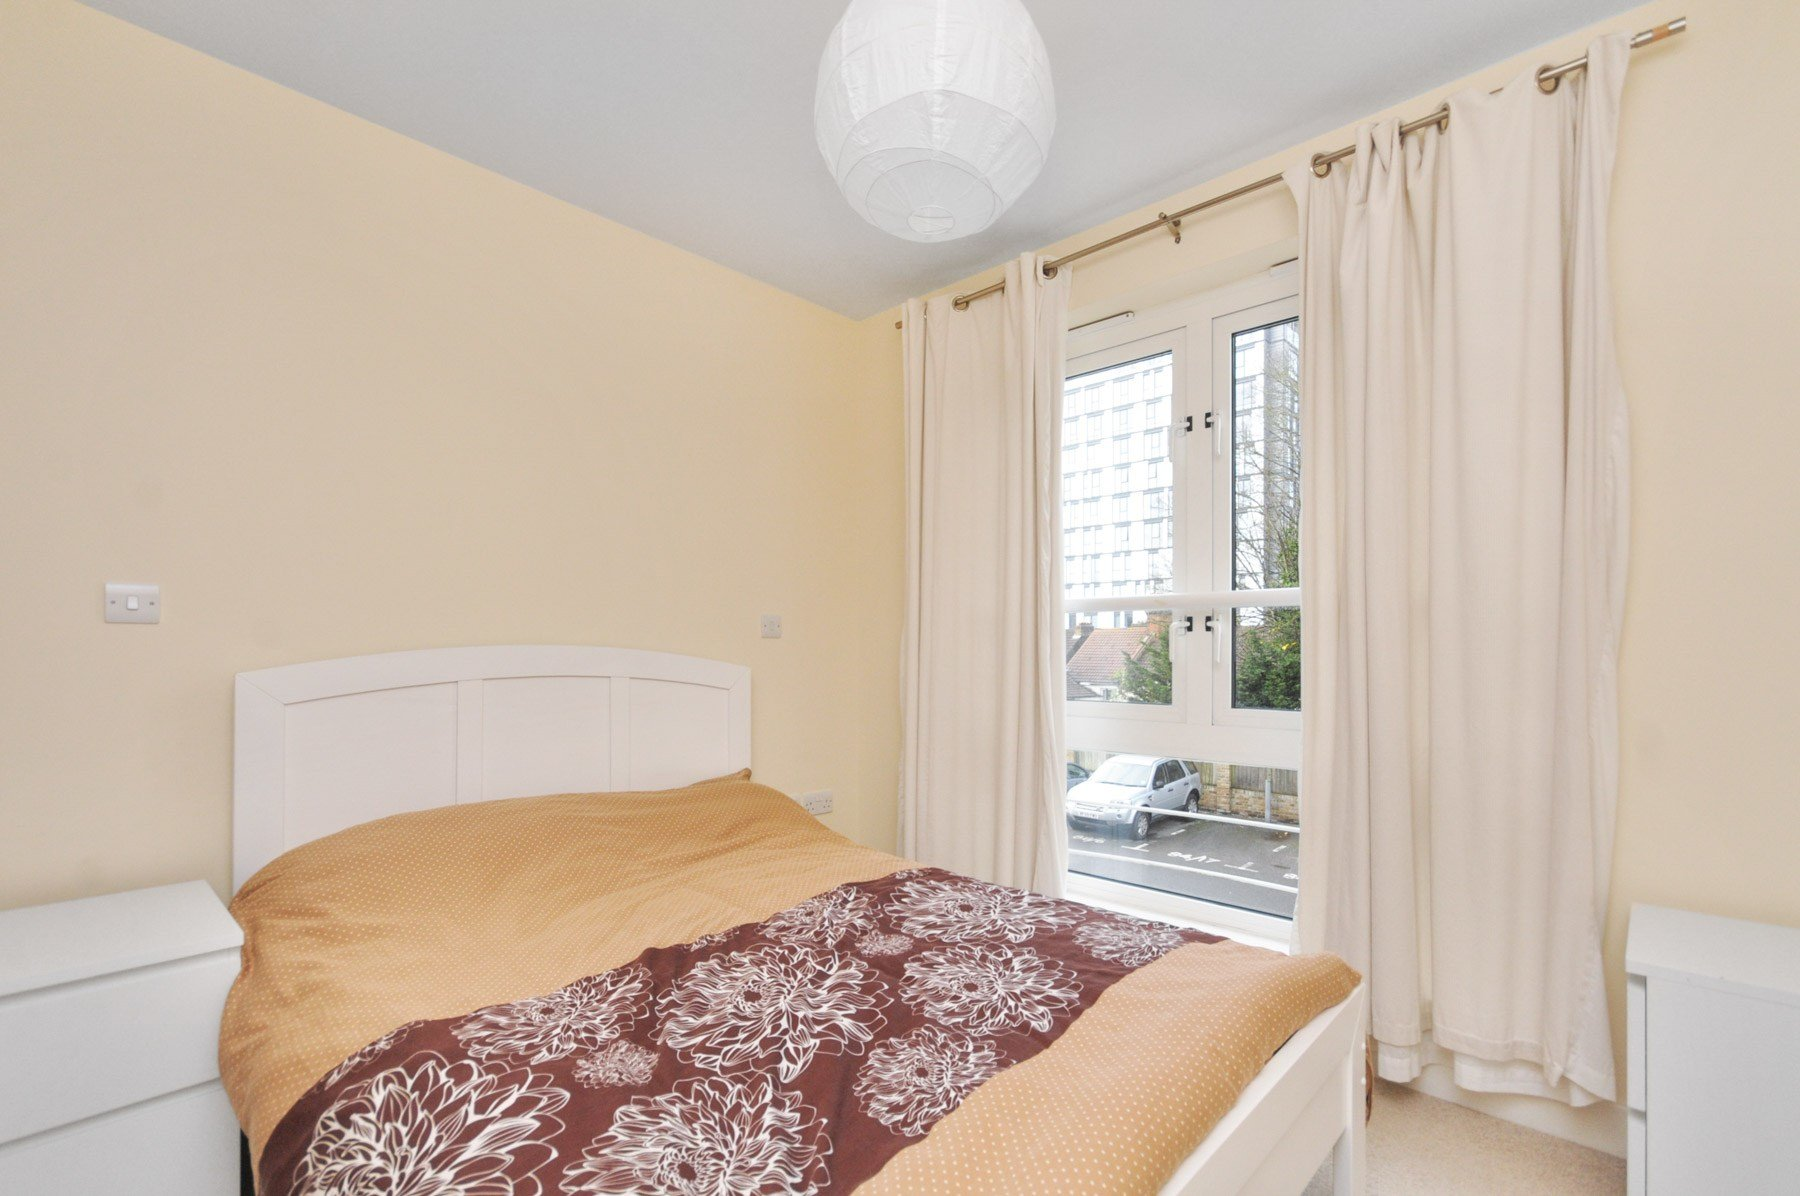 Best 2 Bed Flat To Rent Park Lane Croydon Cr0 1Jx With Pictures